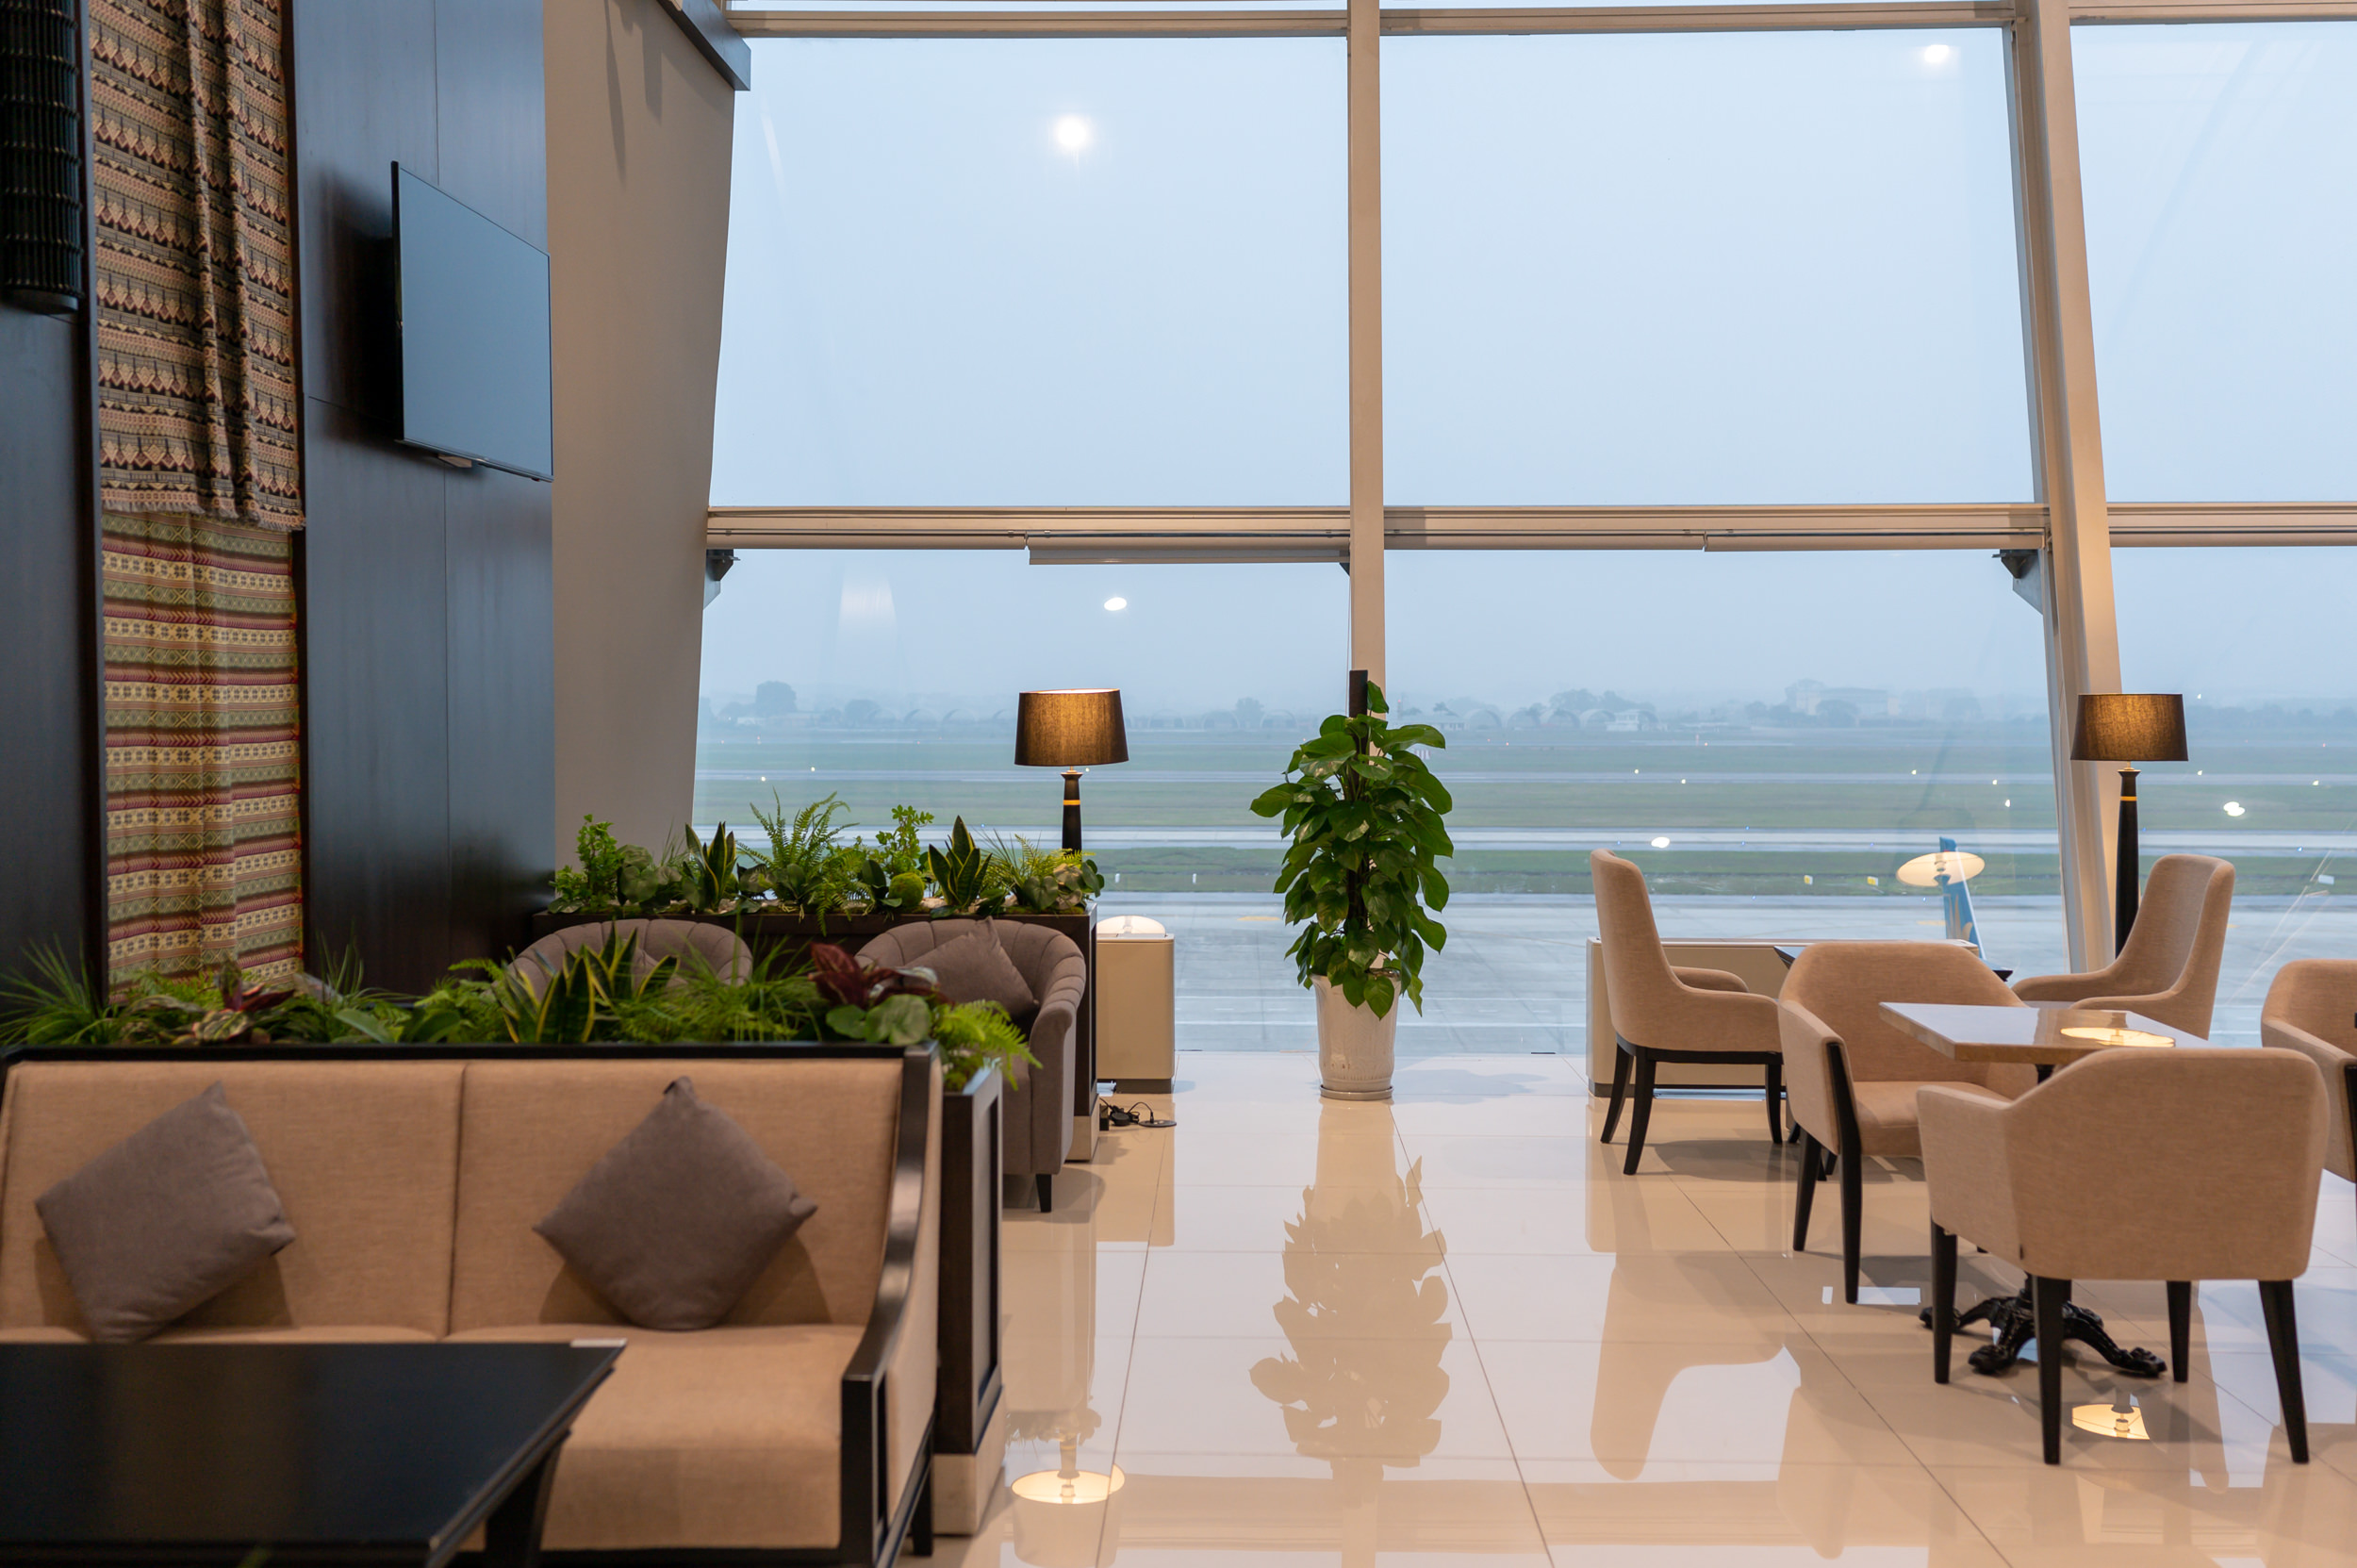 Song Hong Business Lounge - Noi Bai International Airport (HAN)